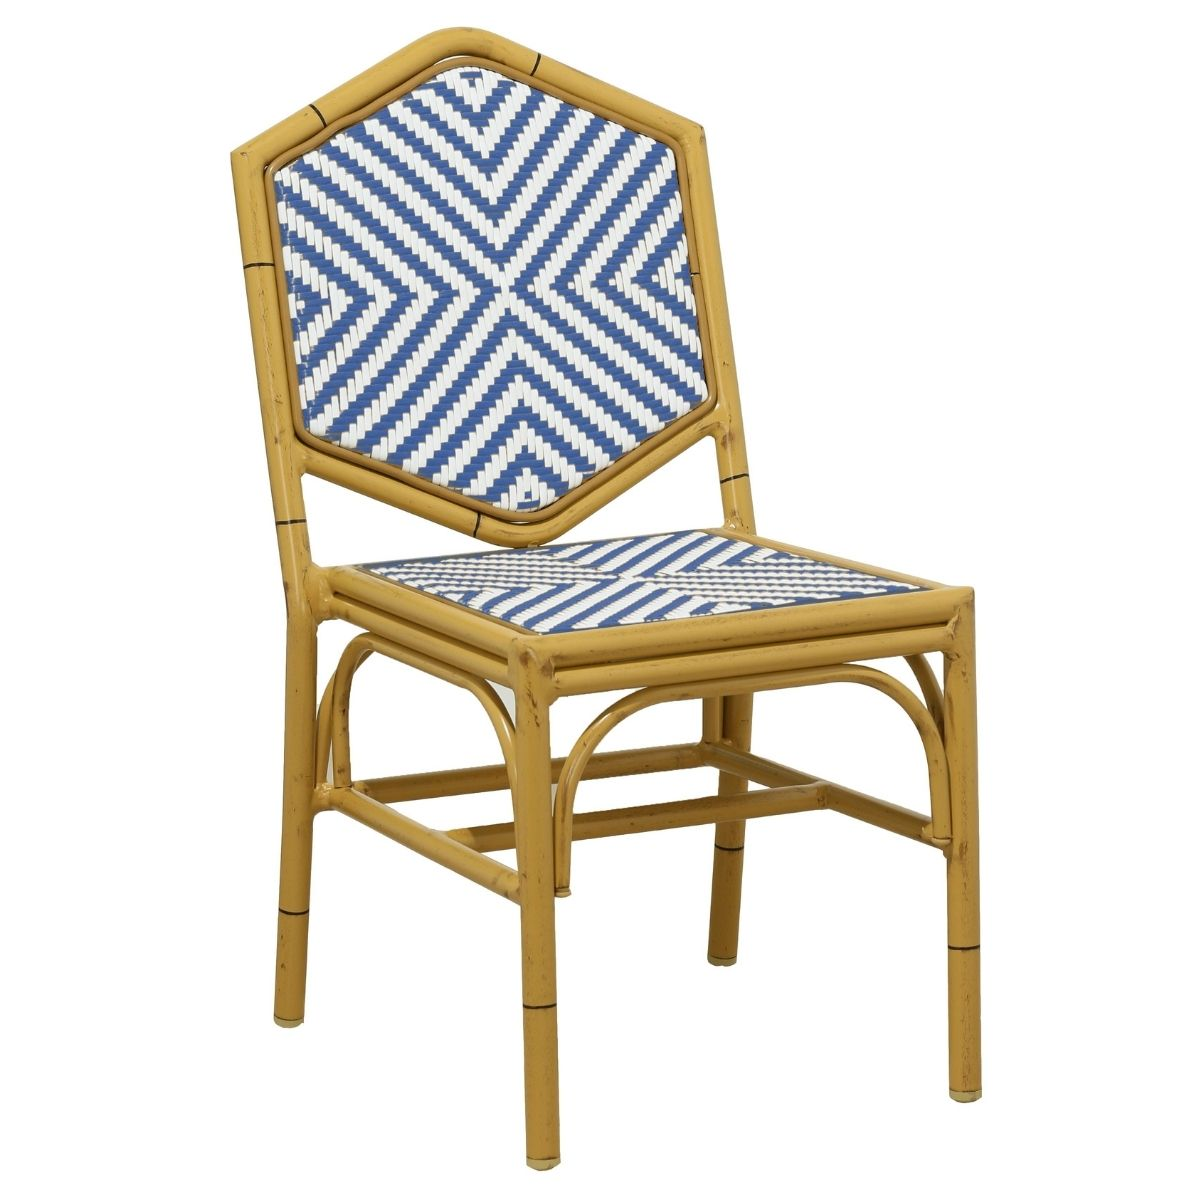 Miley French Flair Blue Outdoor Dining Chair Set of 2